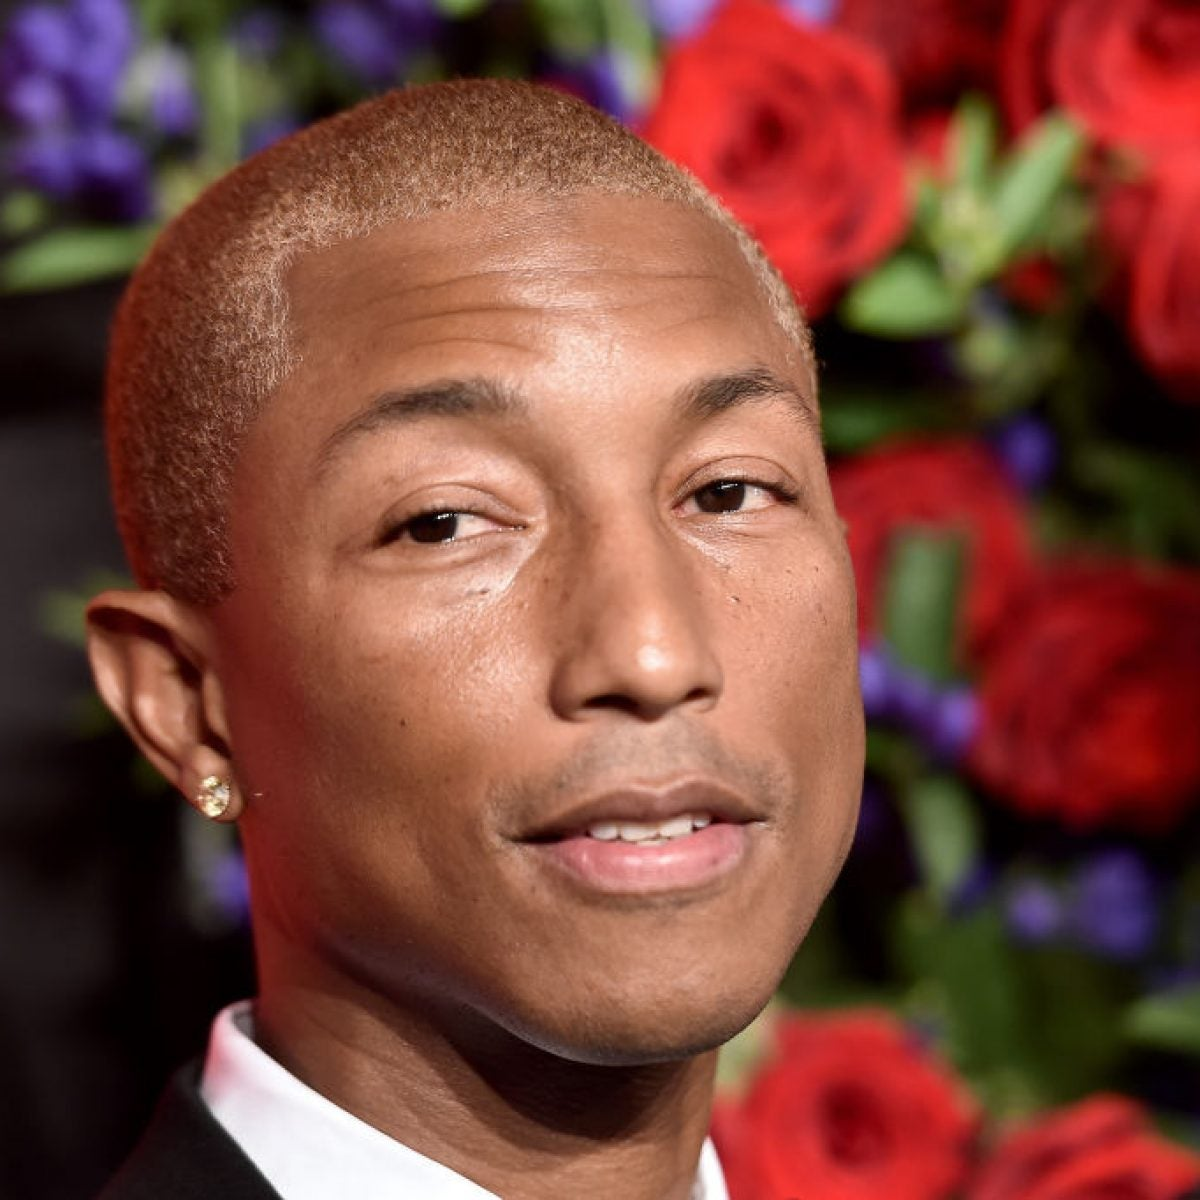 Pharrell Williams' Black Ambition Prize Awards Emerging Black Founders Up To $1 Million To Help Close Wealth Gap